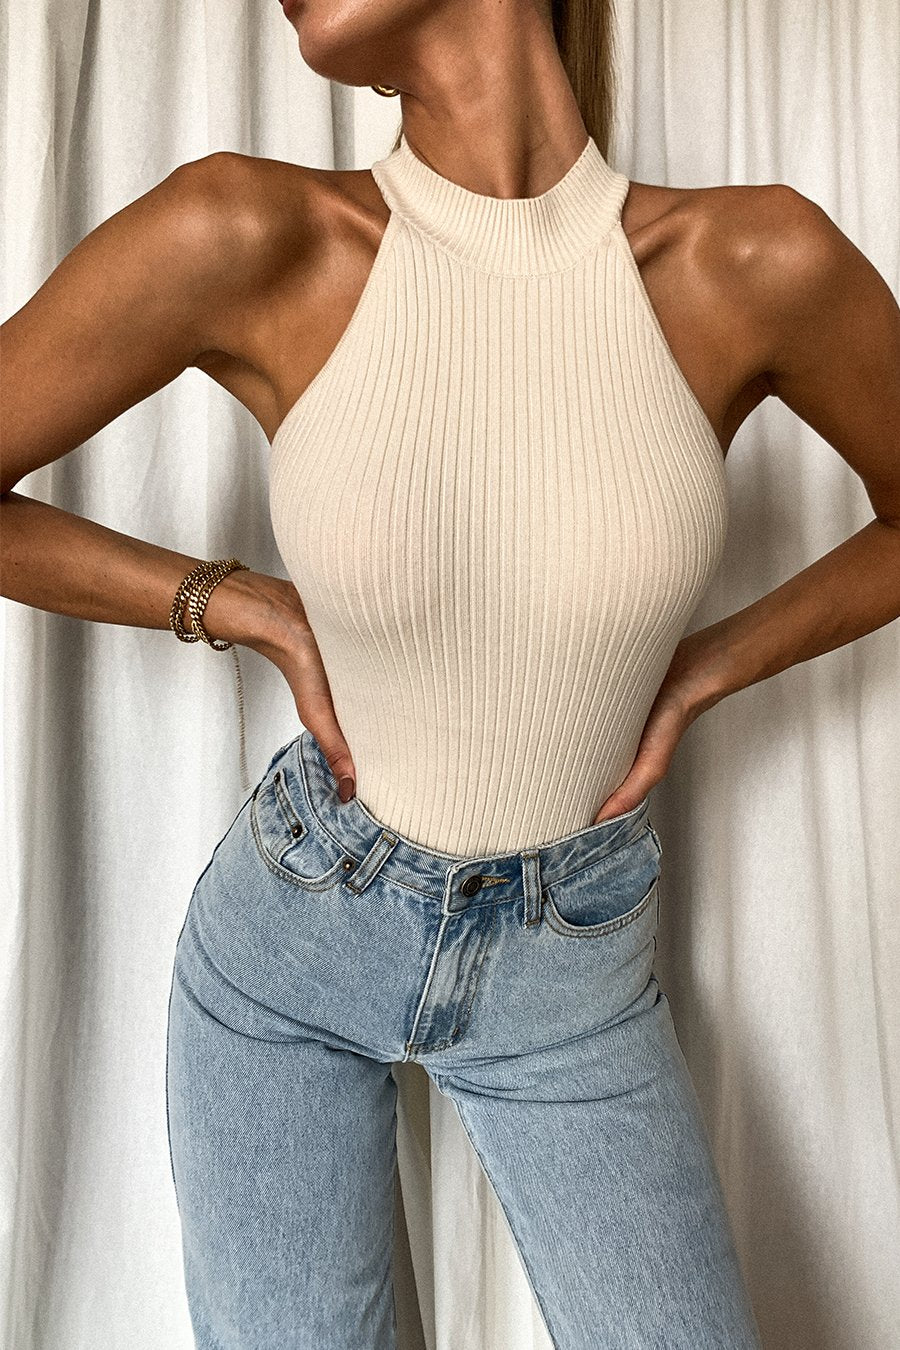 Natalia Racer Neck Knitted Bodysuit - Cream